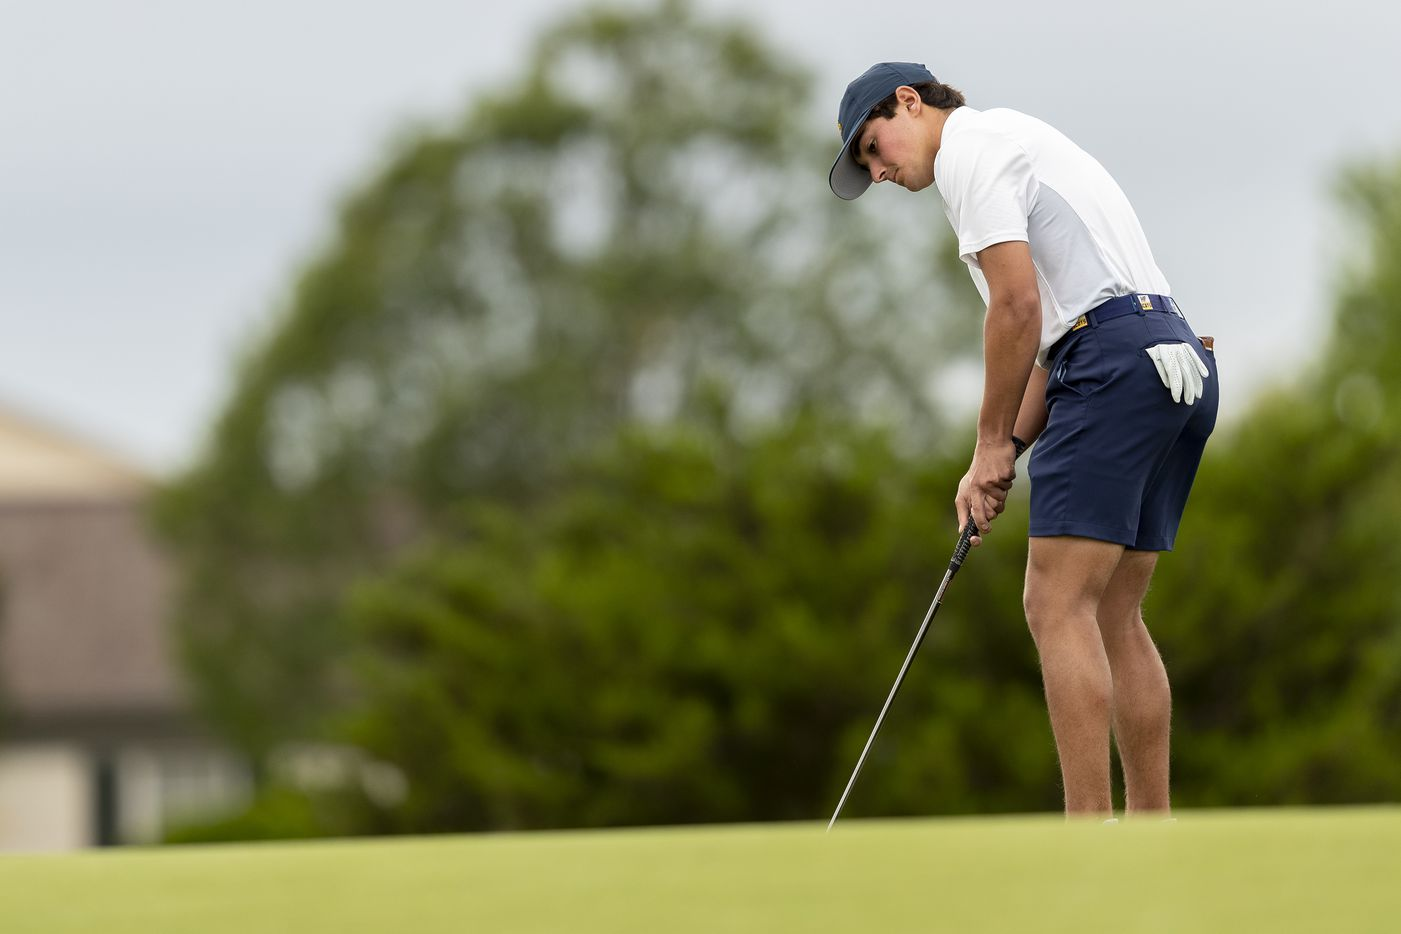 Highland ParkÕs Hudson Weibel putts on the 11th green during round 1 of the UIL Class 5A boys golf tournament in Georgetown, Monday, May 17, 2021. (Stephen Spillman/Special Contributor)